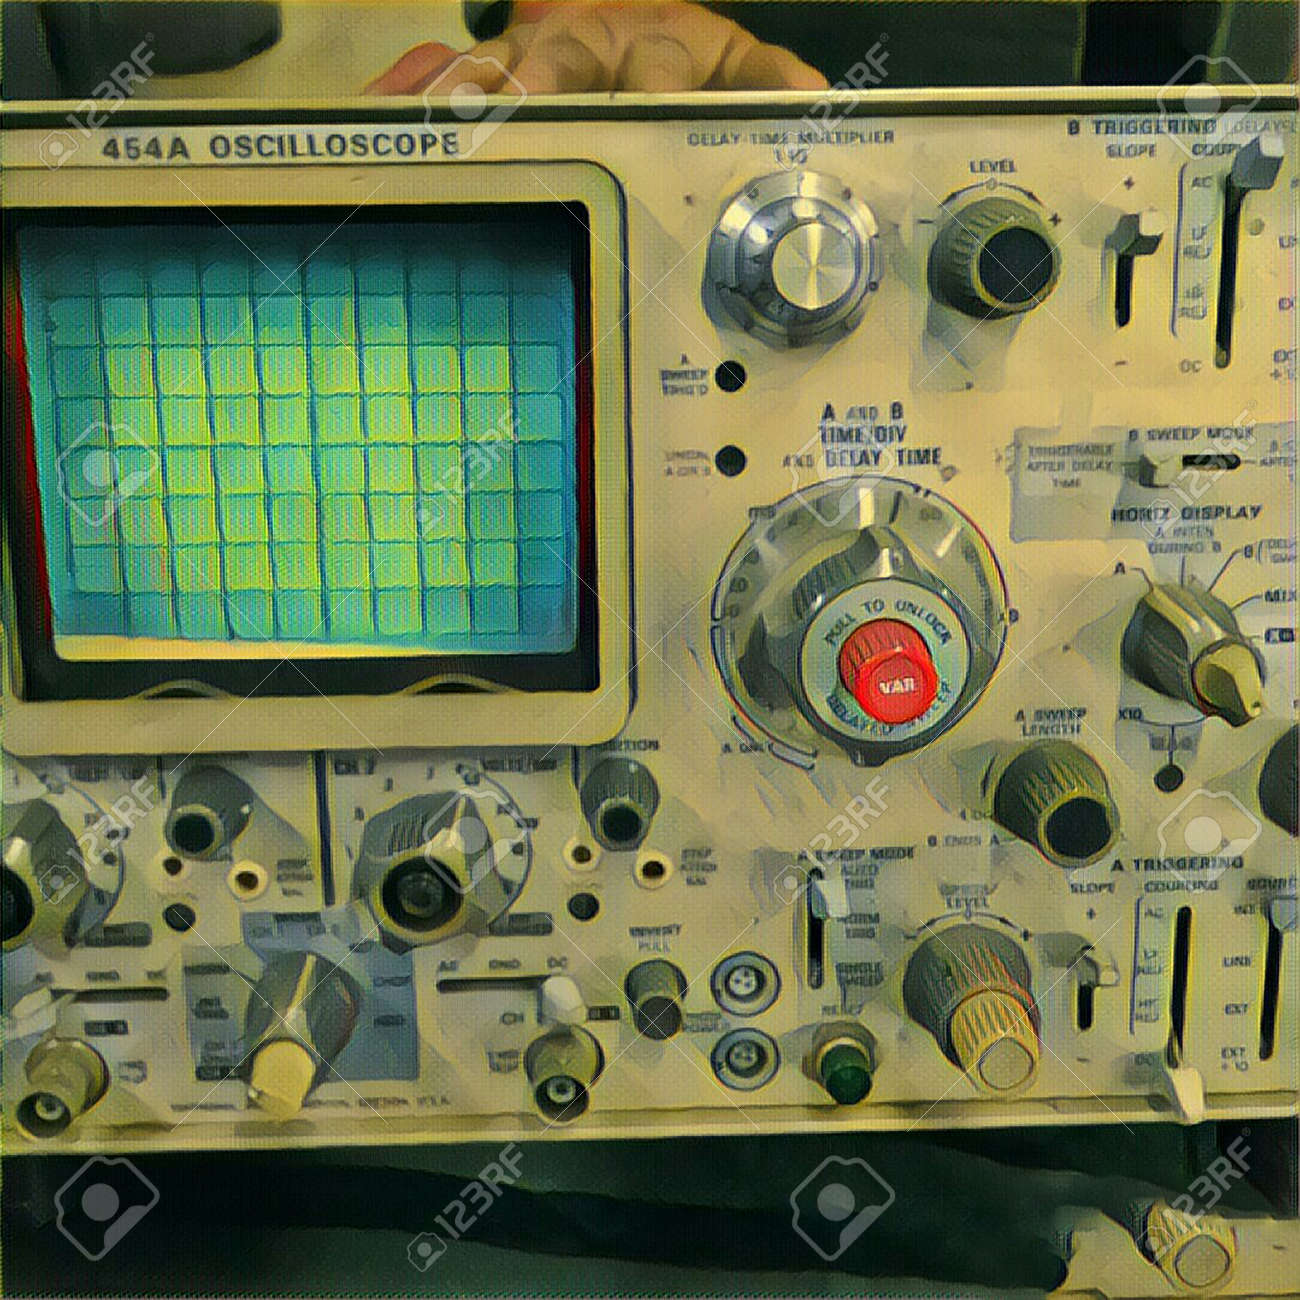 Modern Digital Art Oscilloscope Stock Photo Picture And Royalty Control Pannel 89713377